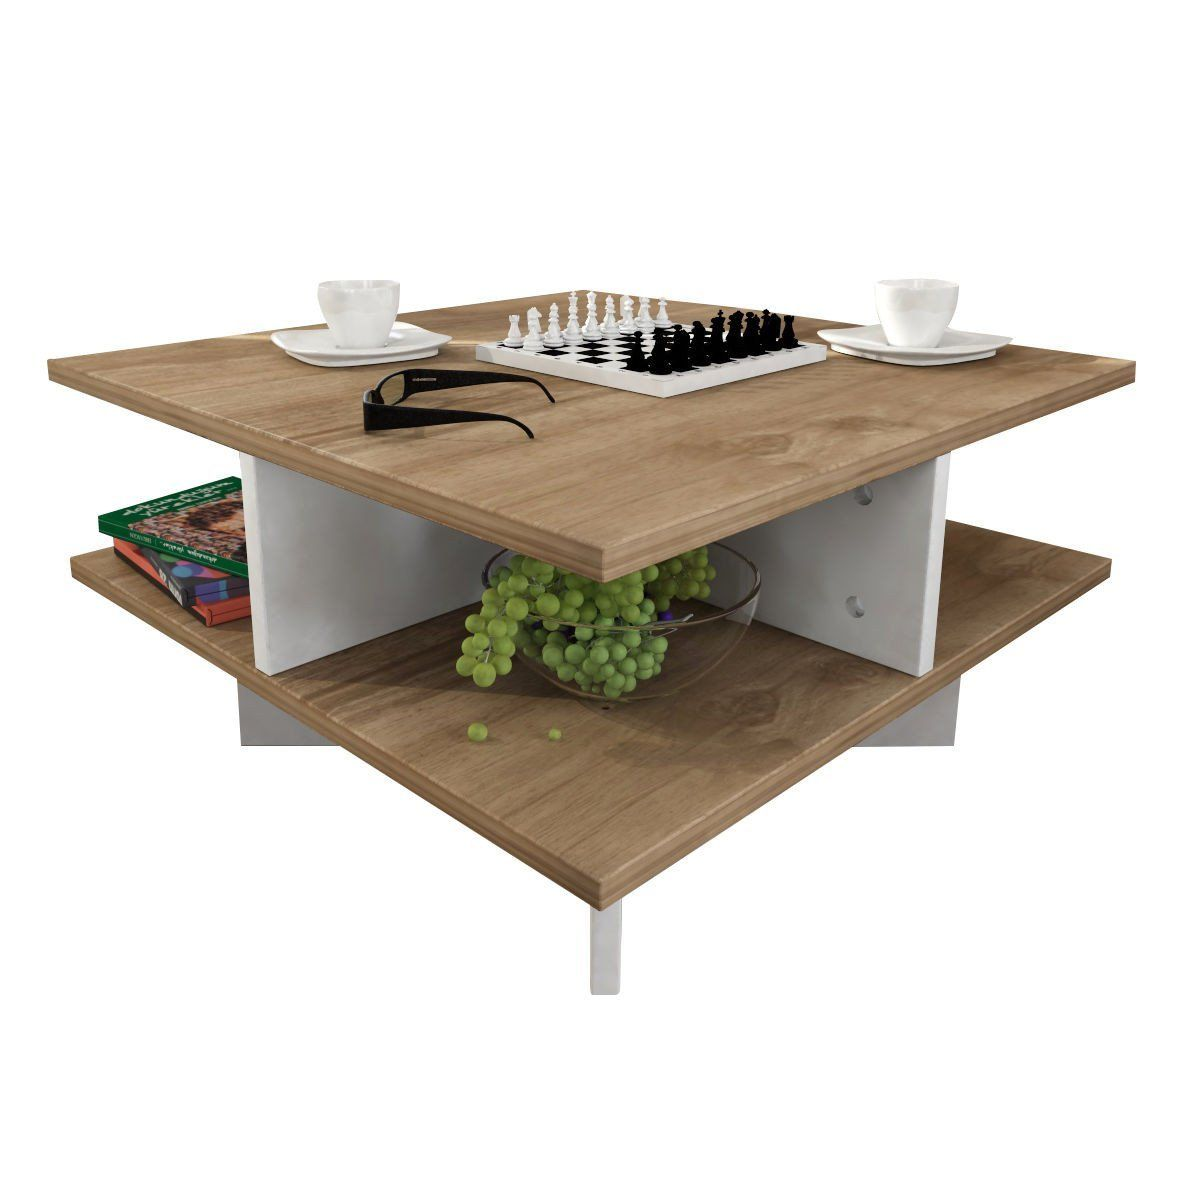 Lamodahome Modern Coffee Table Whitebrown Wooden Appearance Square Cocktail Table With Storage Multi F Coffee Table Modern Coffee Tables Square Cocktail Table [ 1200 x 1200 Pixel ]